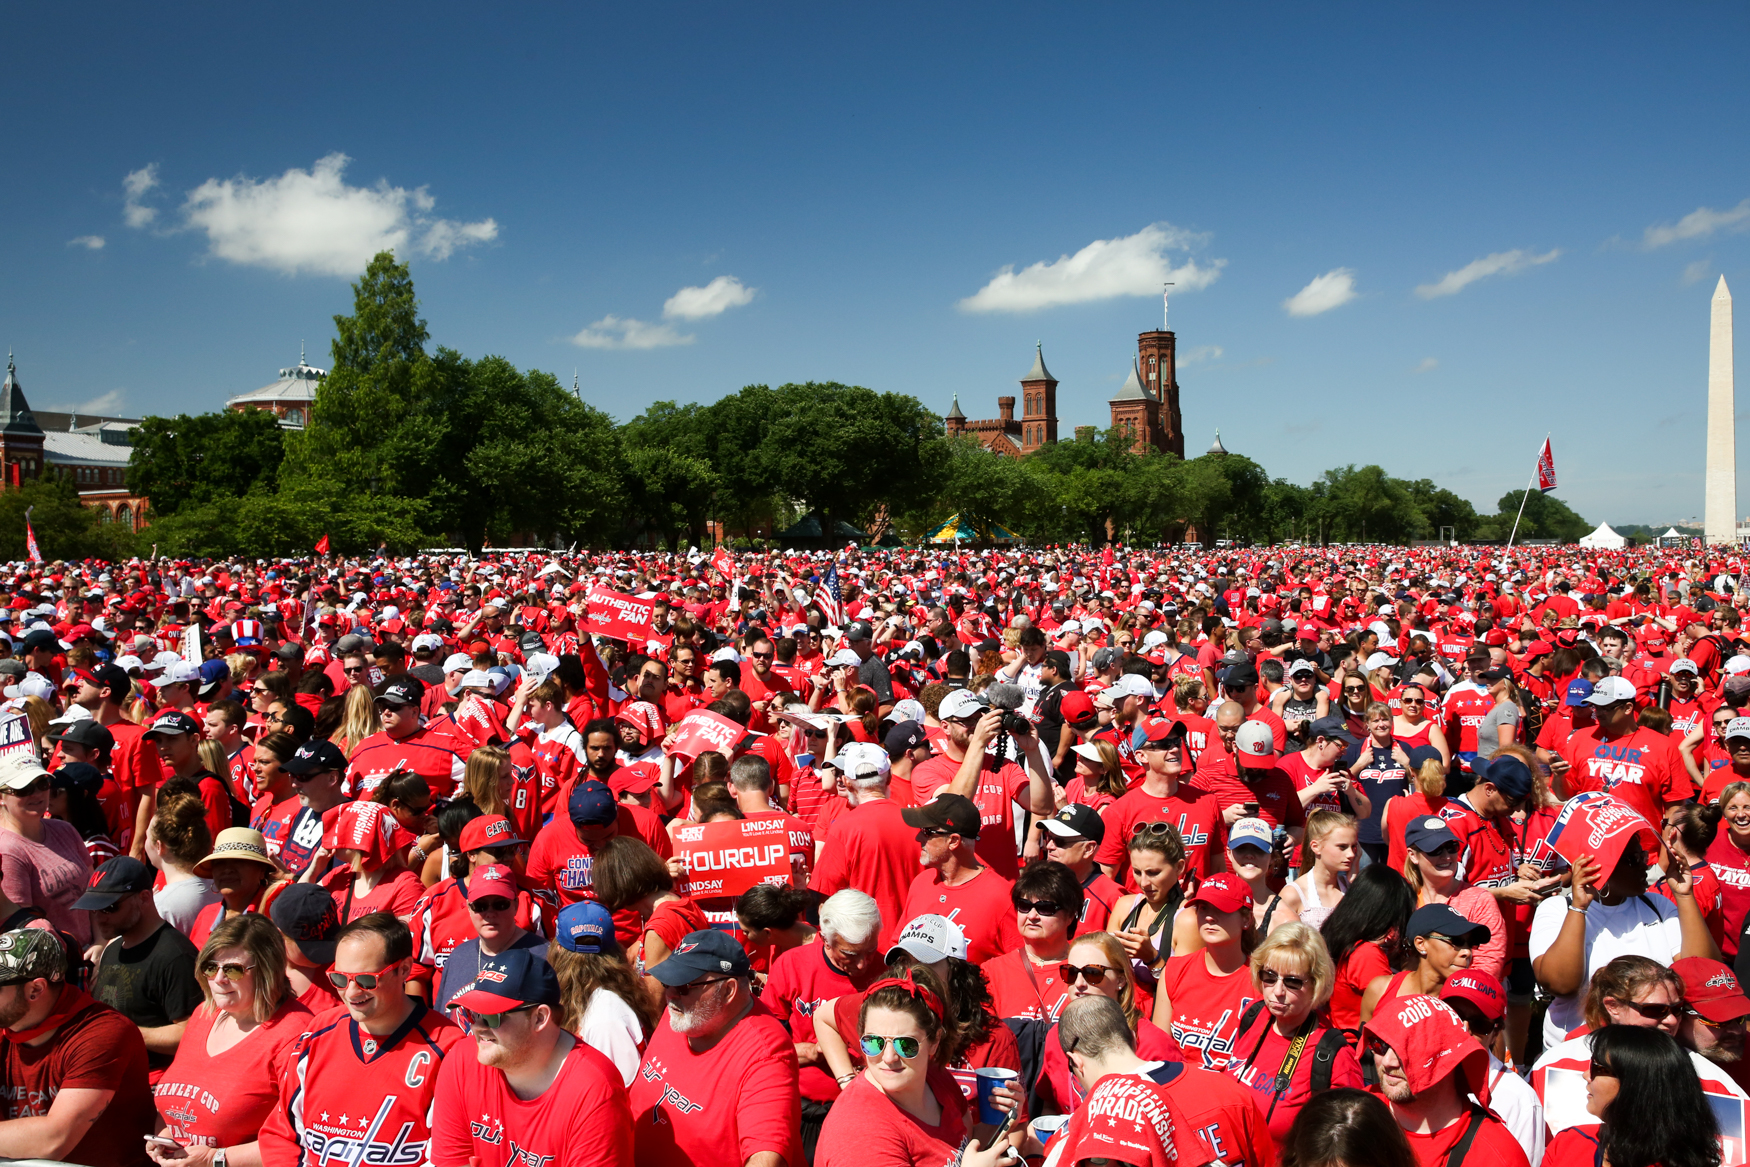 The National Mall was a sea of red as the Washington Capitals paraded the Stanley Cup through the streets of D.C. Although the cup barely left Alex Ovechkin's brawny-but-tender embrace, the players reveled in the fervor, shotgunning beers as they rode on top of buses along Constitution Avenue before rallying on The Mall.(Amanda Andrade-Rhoades/DC Refined)